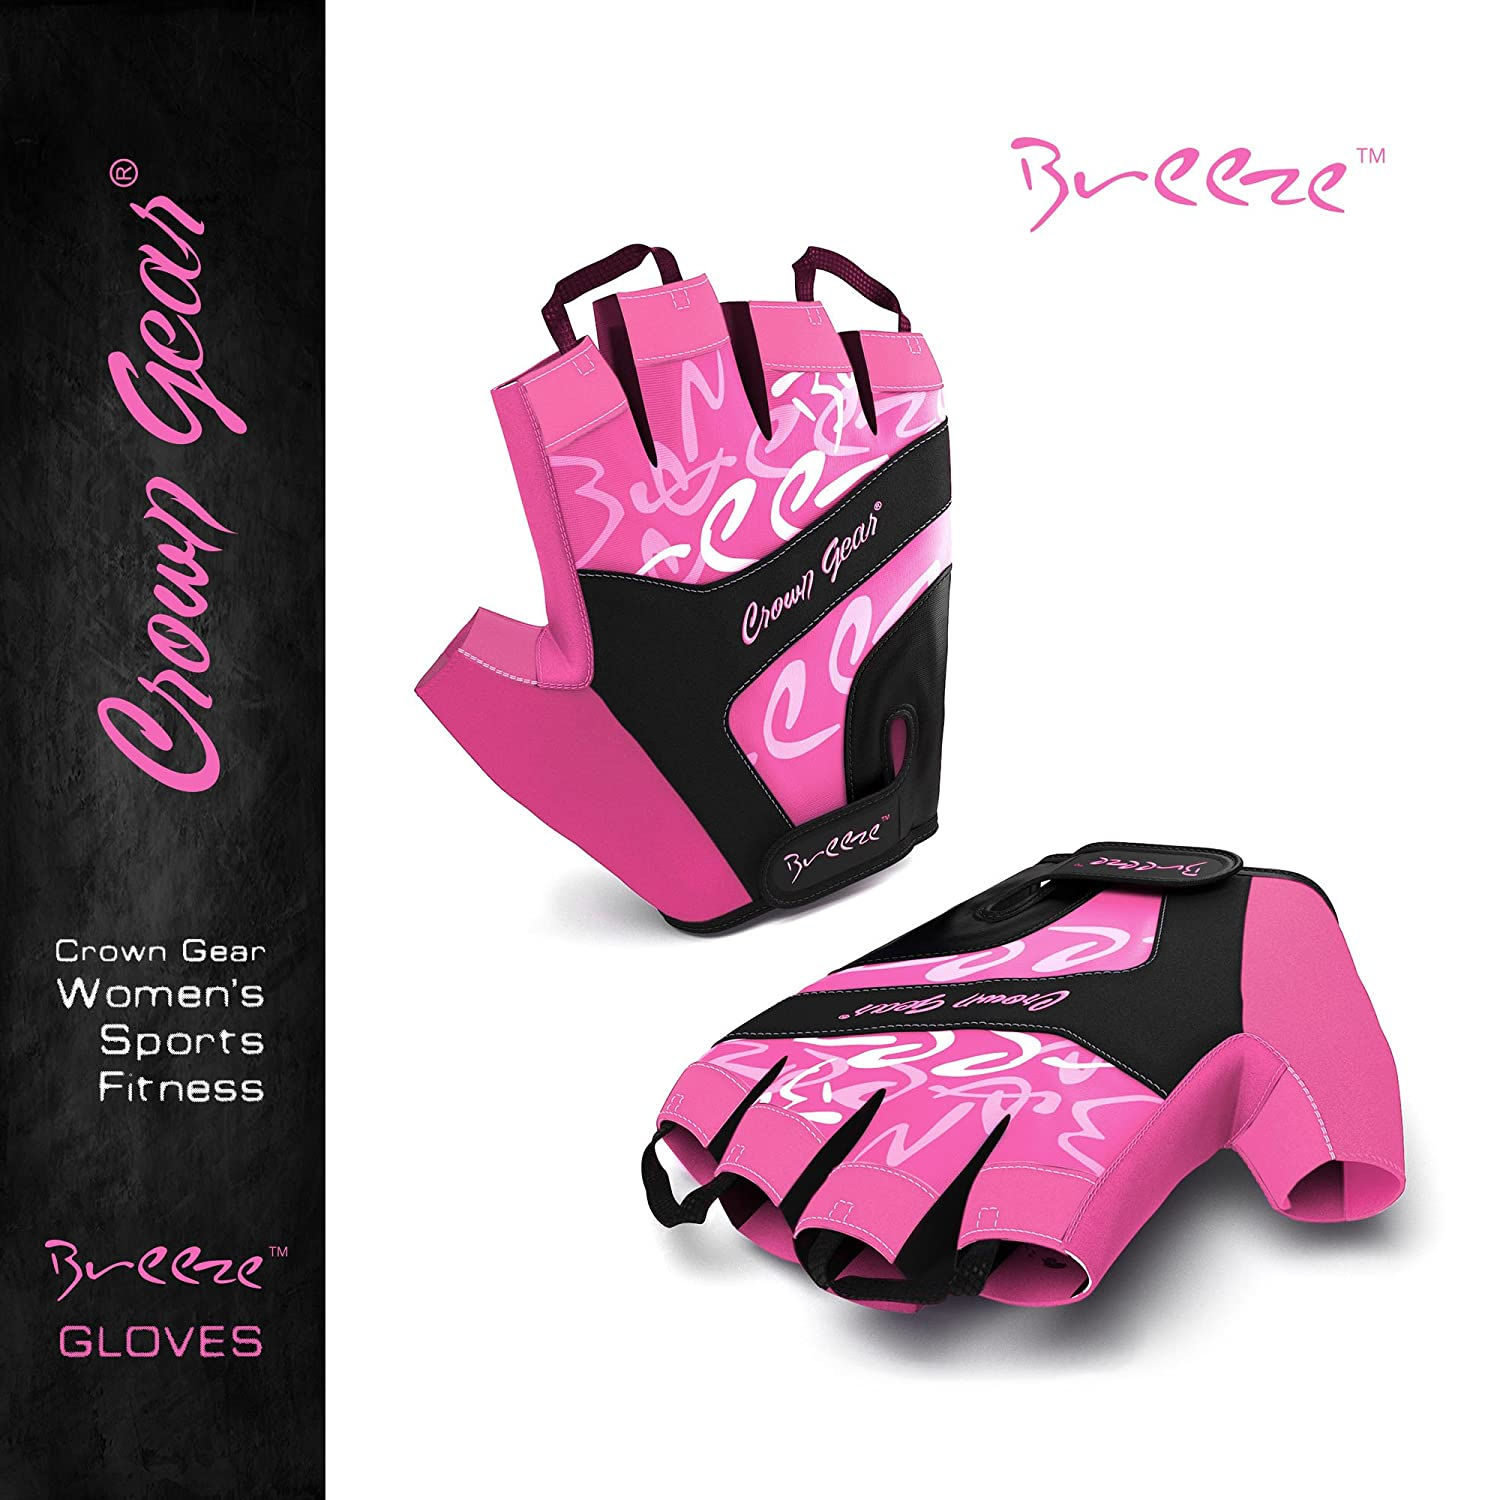 Breeze Women/'s Biking Cycling Gloves Performance Mountain Dirt Bike and Cycle Gloves with Adjustable Wrist Closure and Pull-Off Tapes